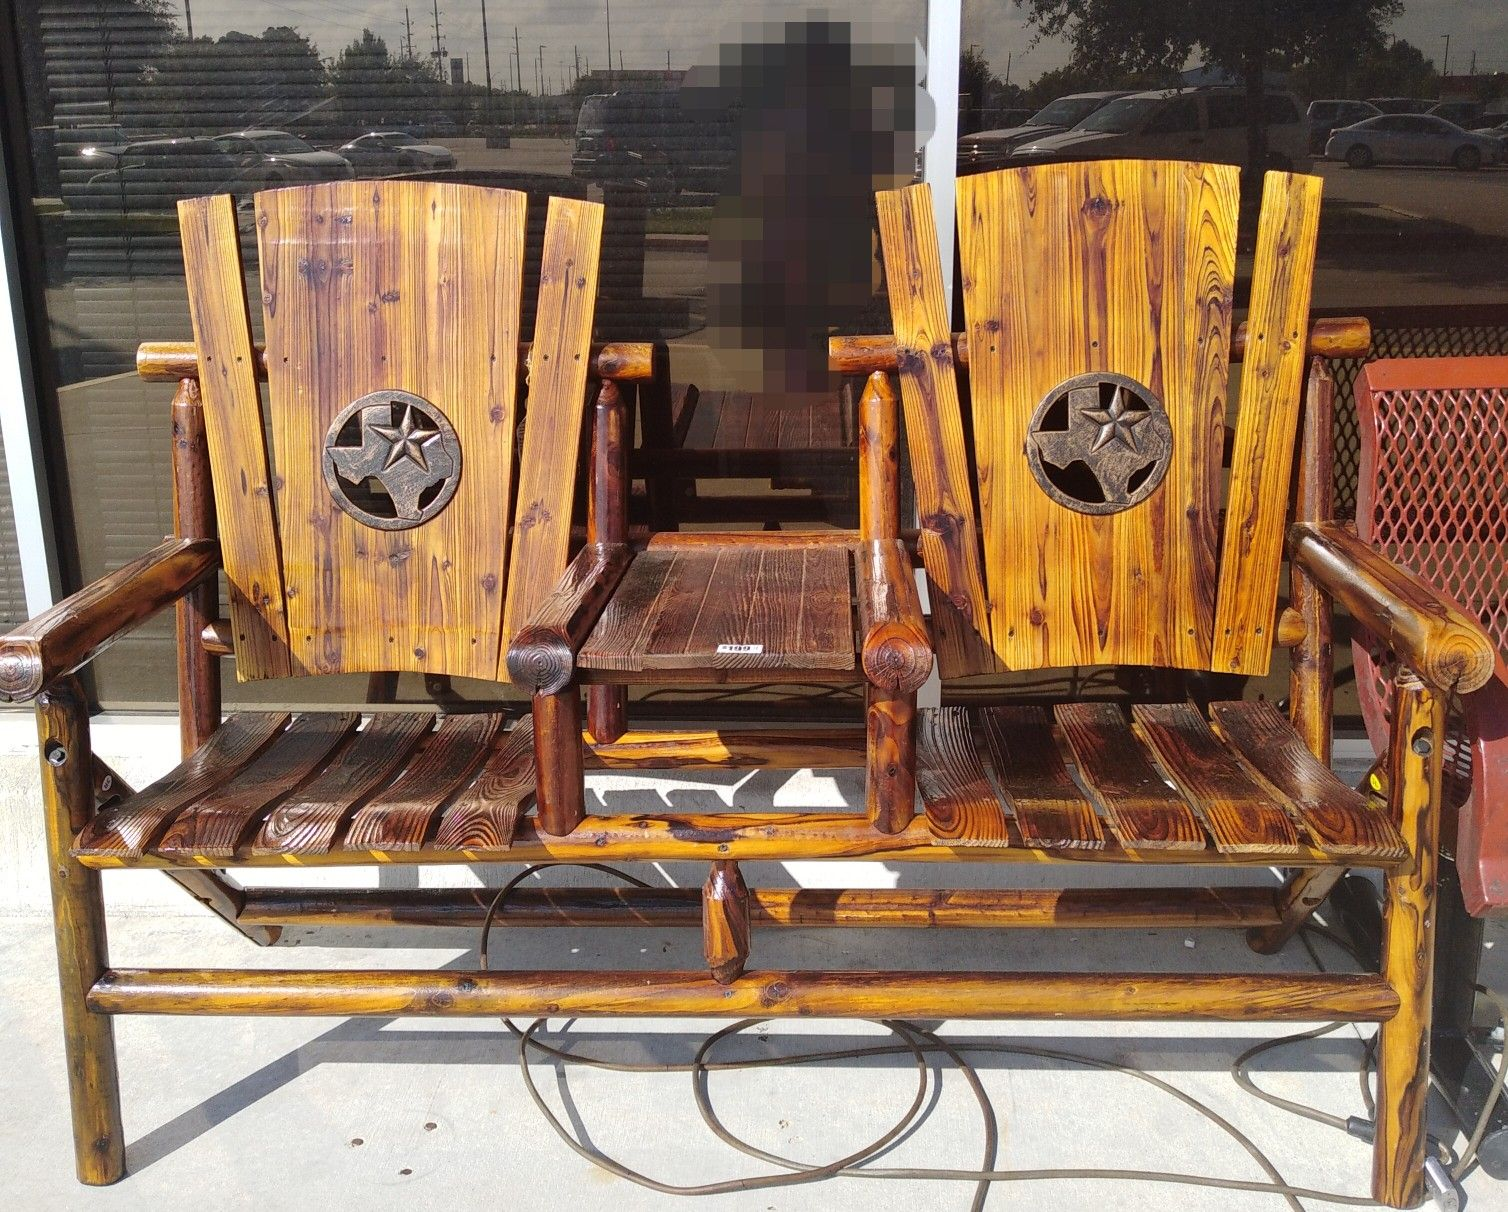 Texas bench sold at HEB stores Outdoor decor, Heb